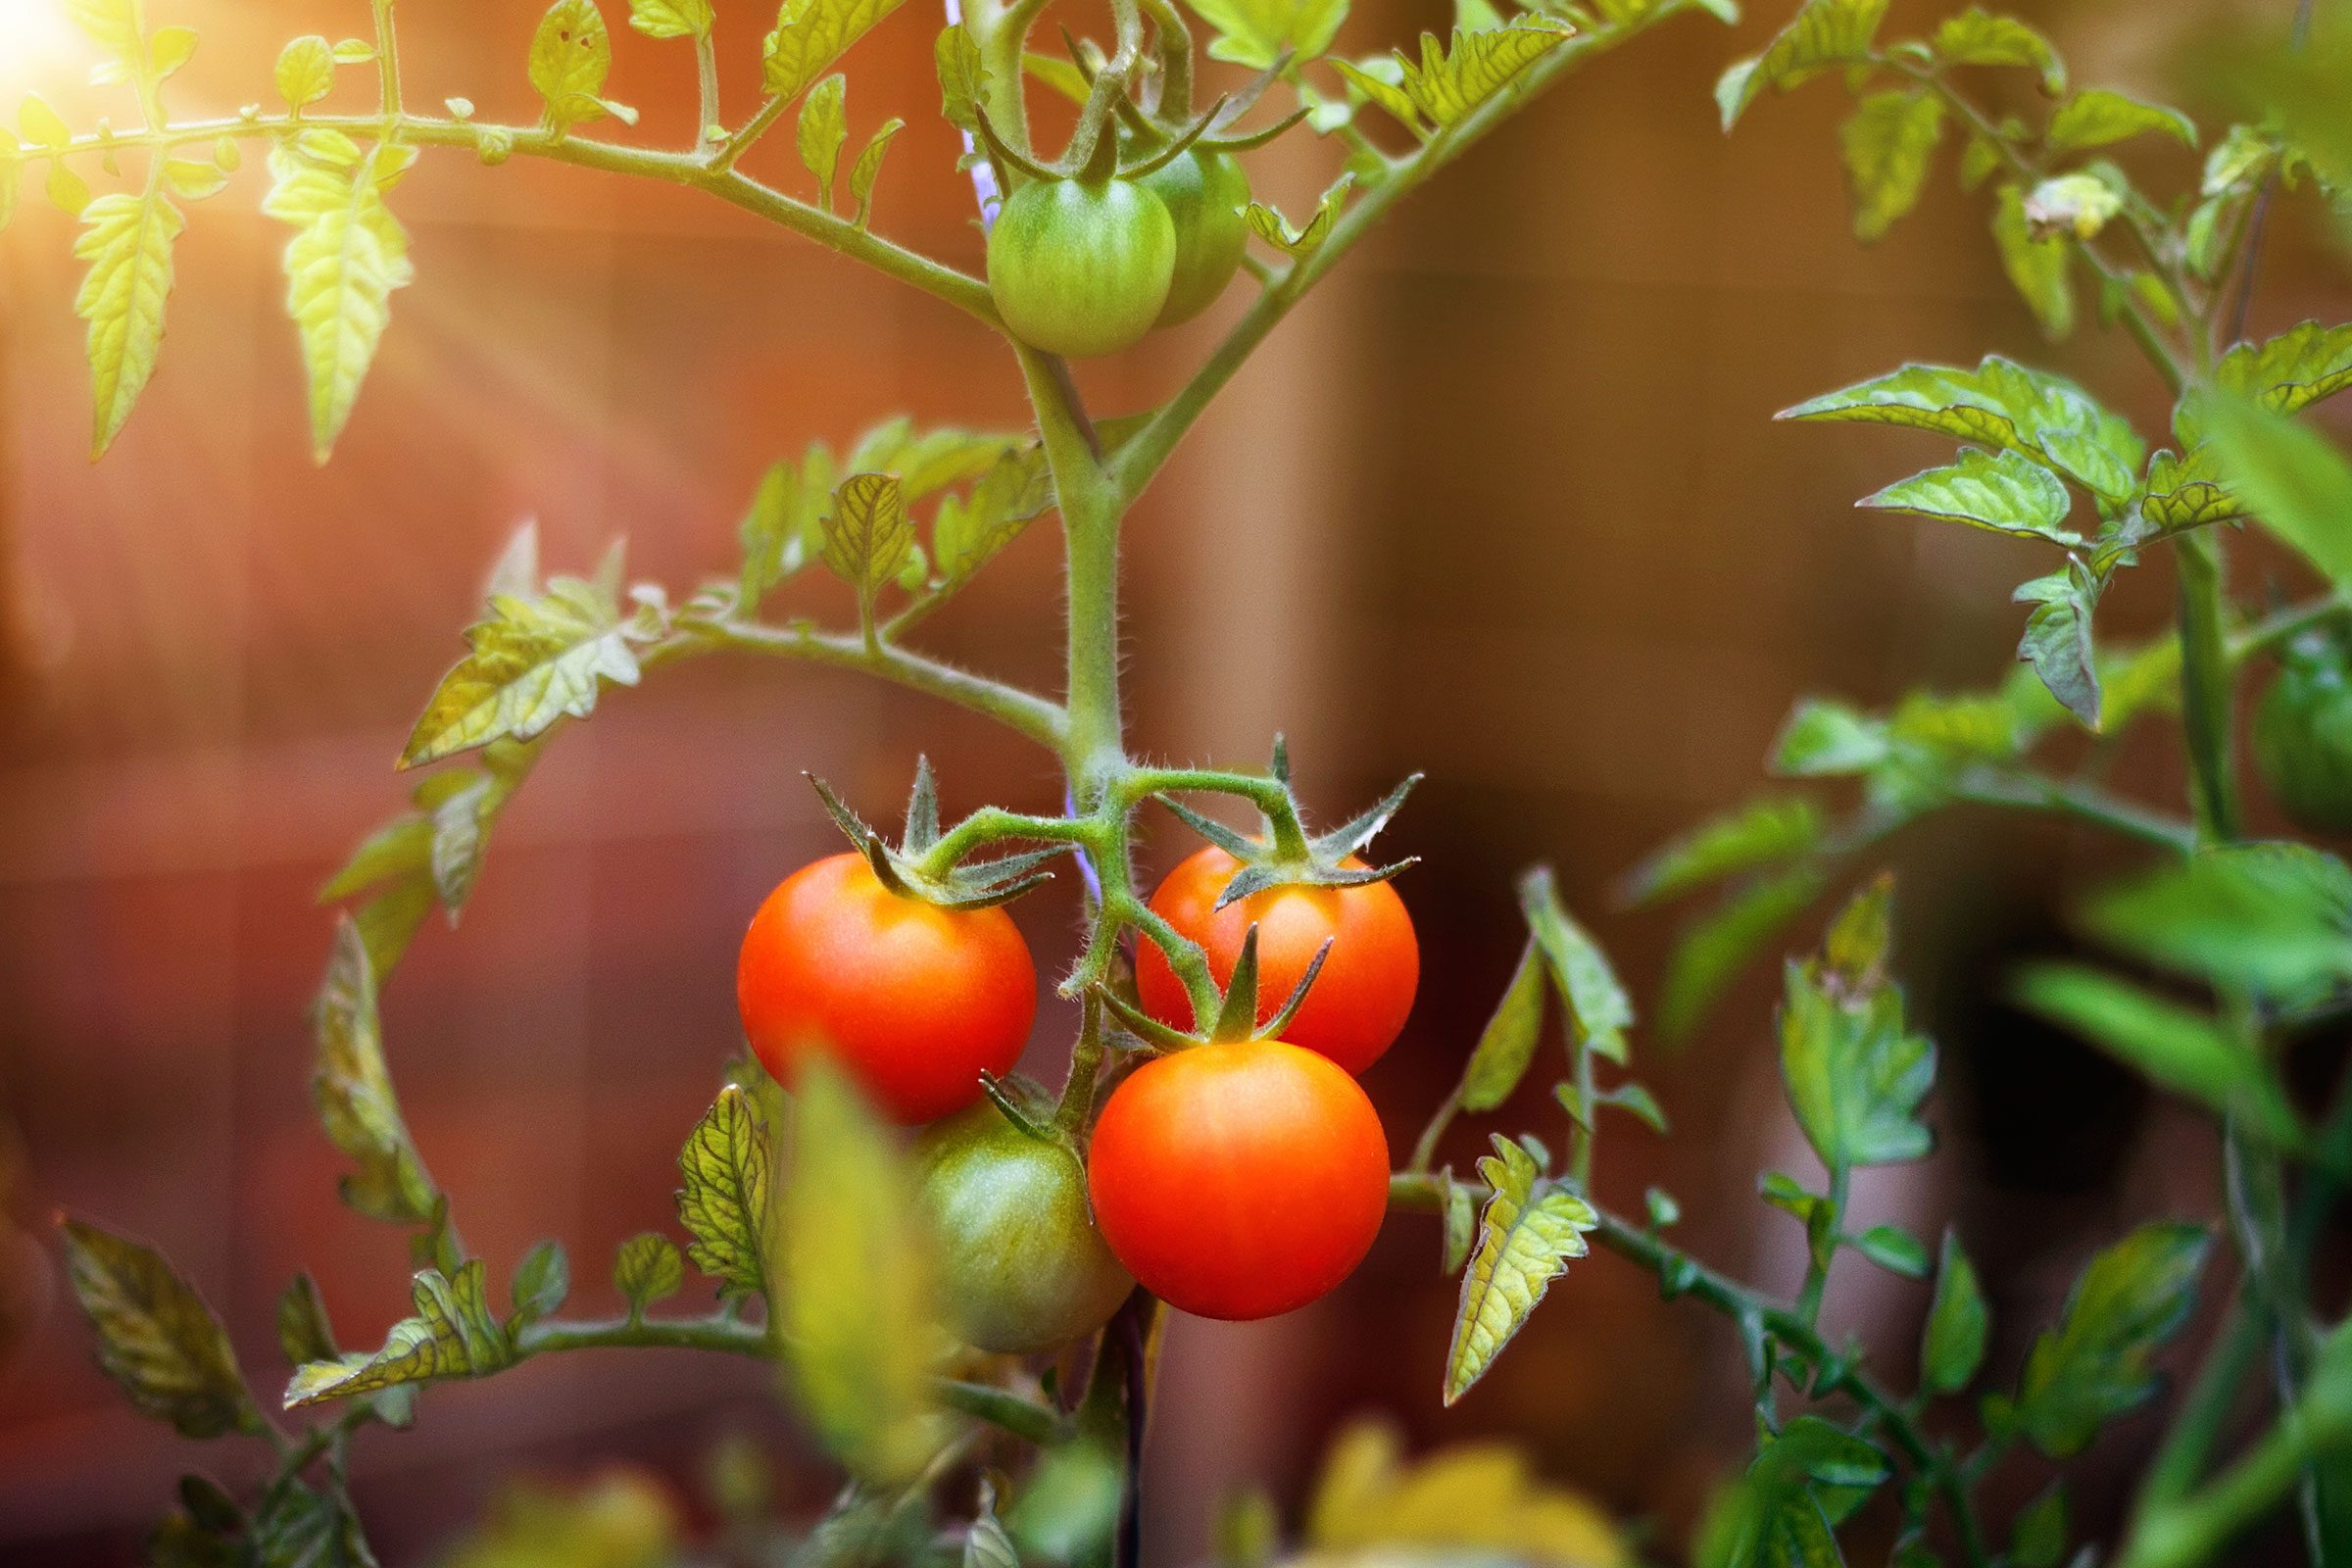 Ripen end-of-season tomatoes